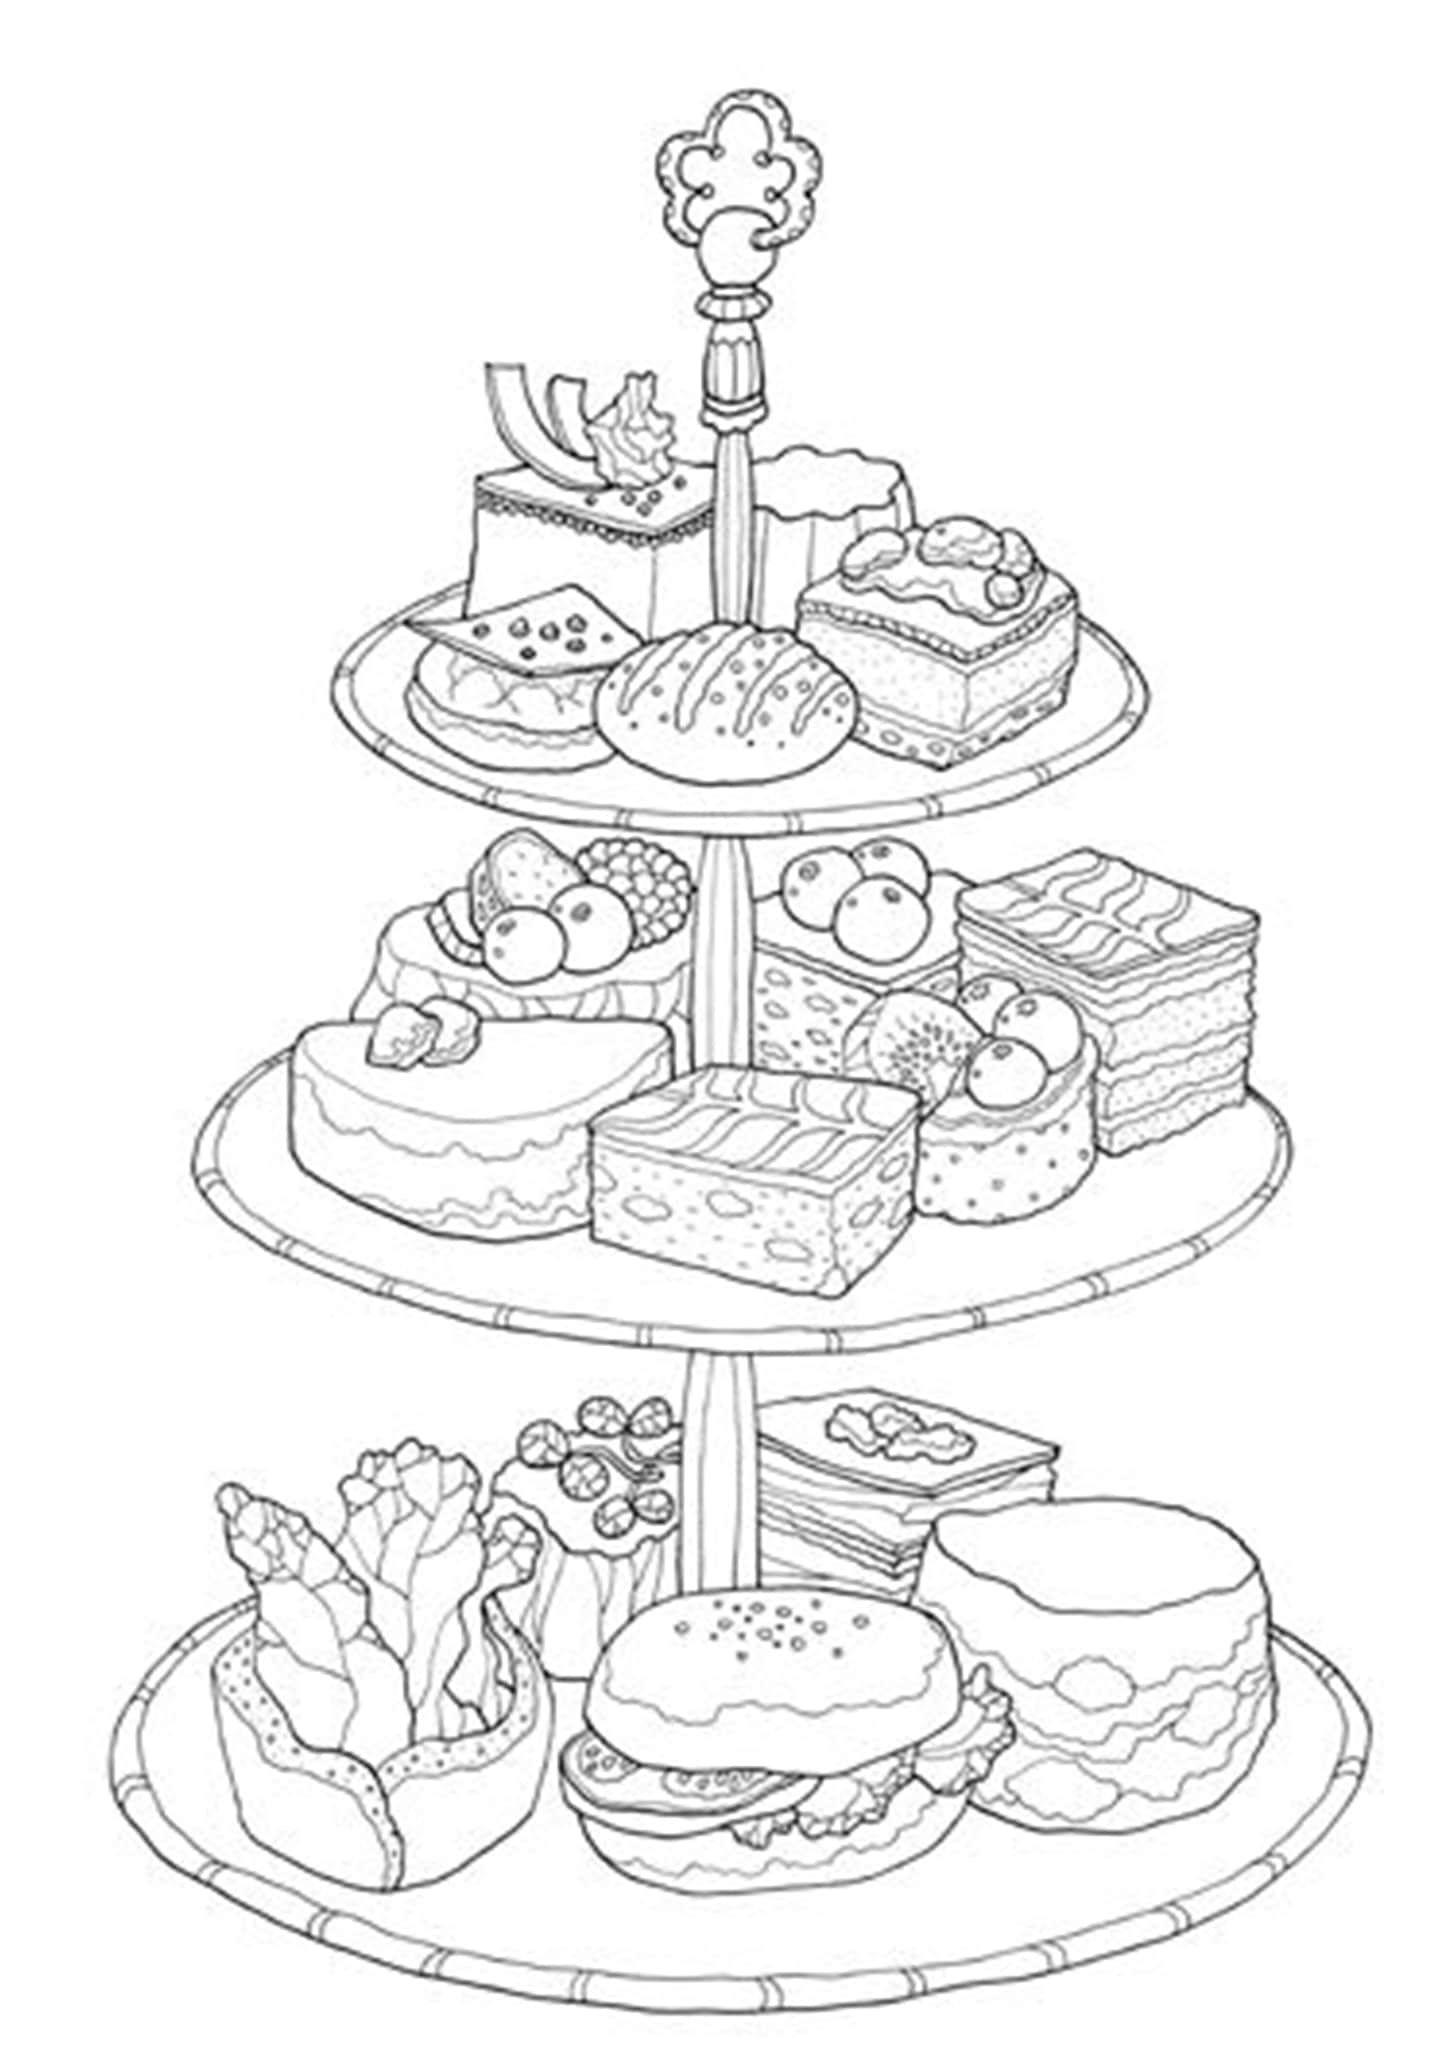 Free Easy To Print Cake Coloring Pages Coloring Pages Food Coloring Pages Cute Coloring Pages